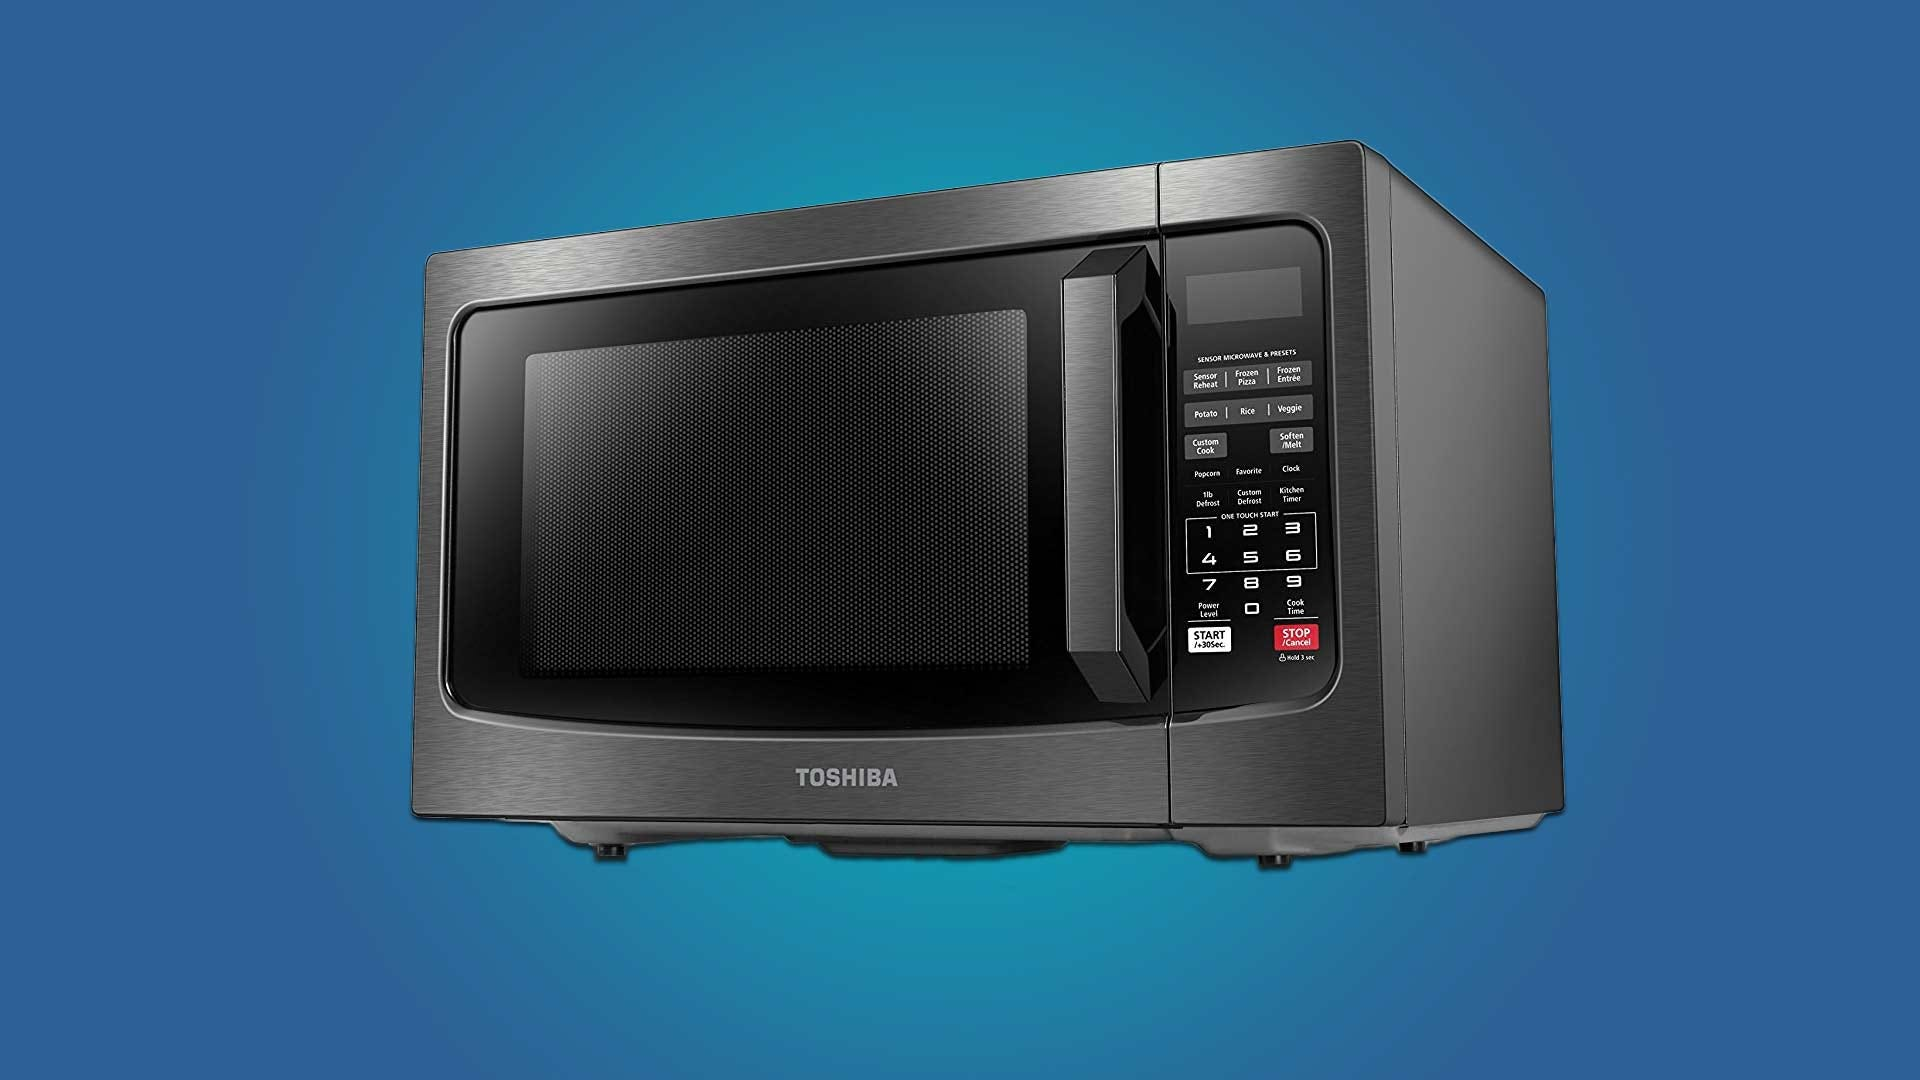 Whether You Re Just Warming Up Some Soup Popping Popcorn Baking A Sdy Mug Cake Or Microwaving An All In One Meal The Microwave We Ve Got